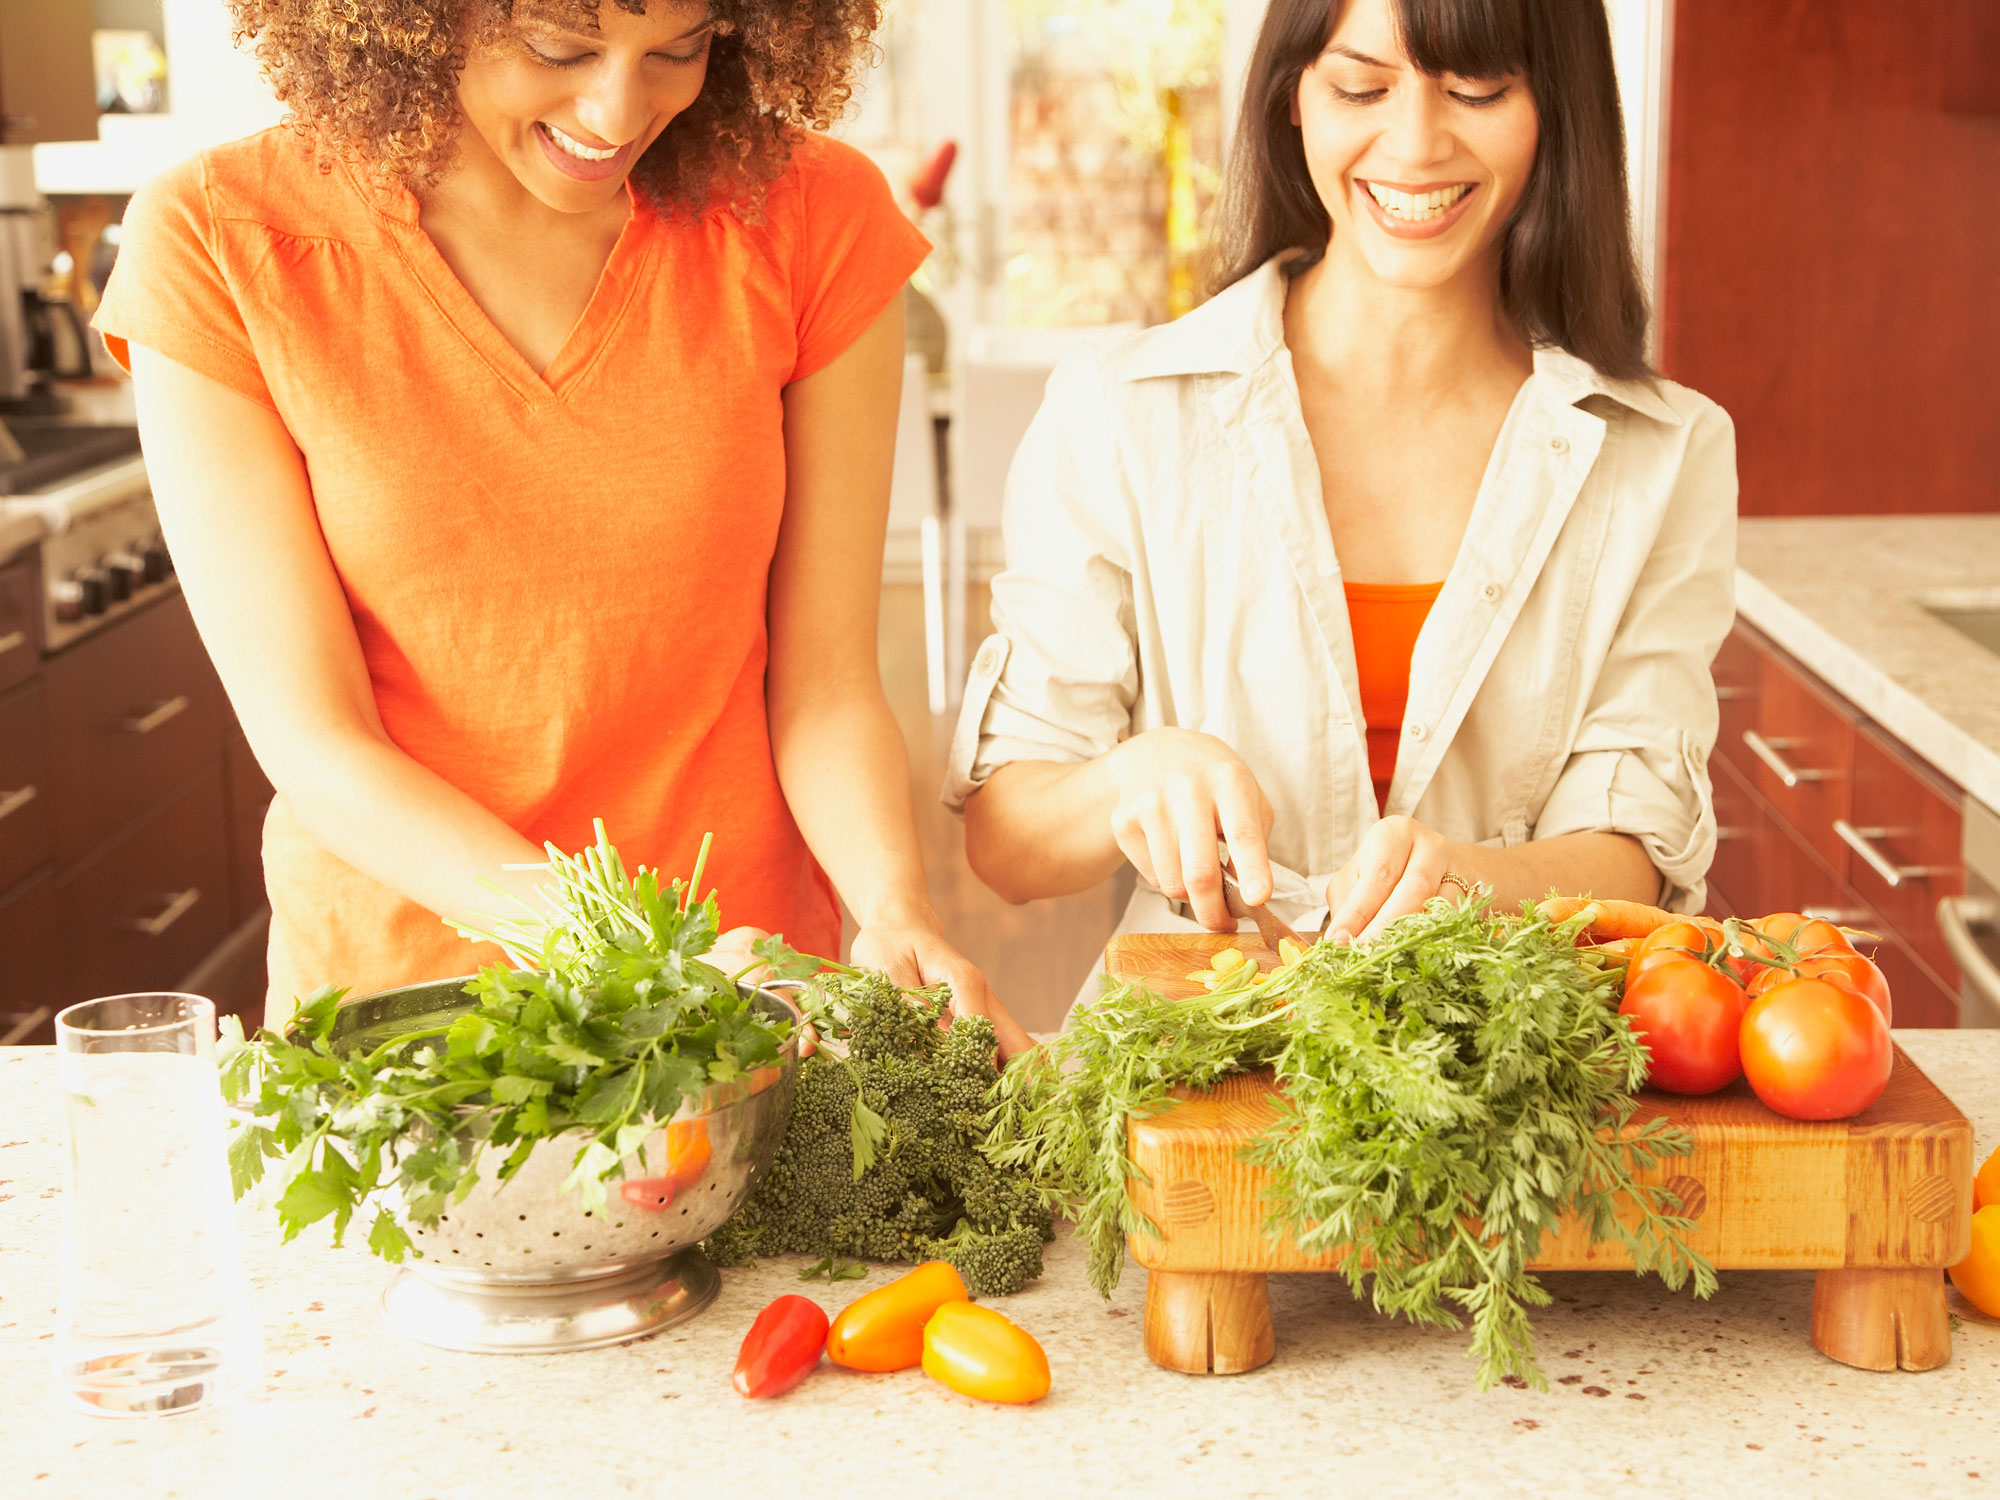 Forget dieting: Adopt an 'eat more-live better' food style